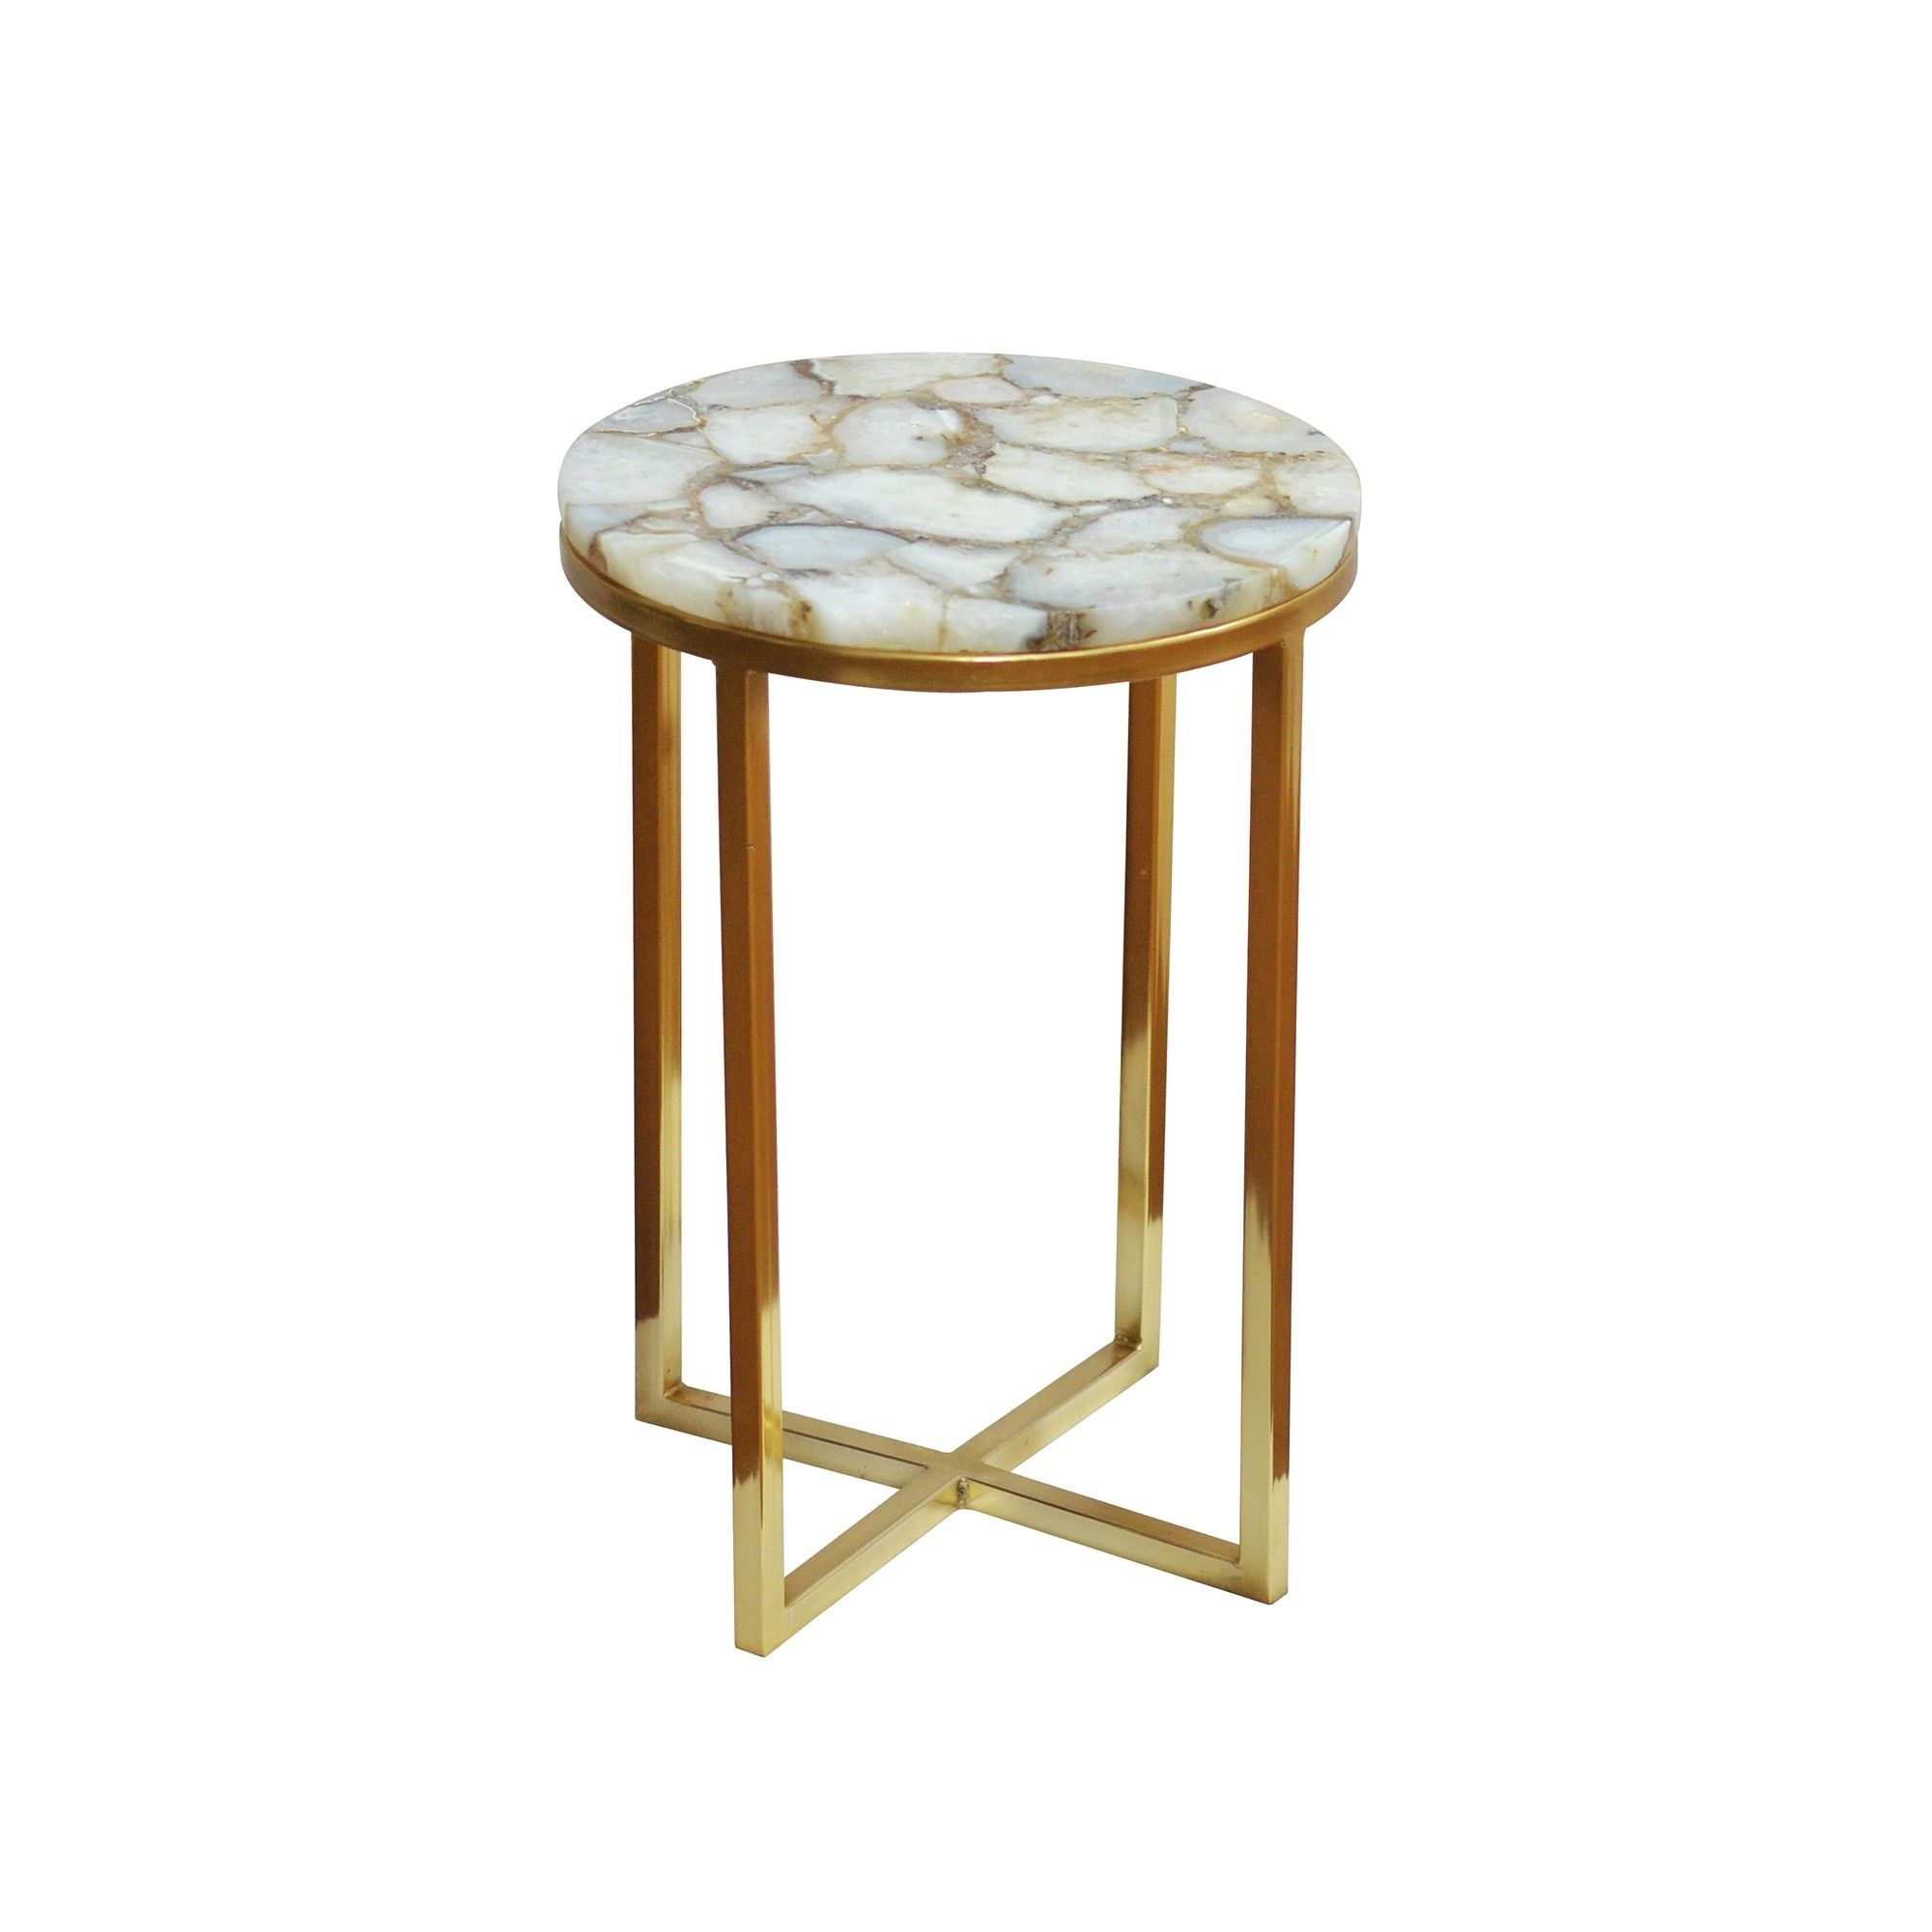 round side table with natural white agate tabletop and steel contemporary accent base gold electroplating copper gray mirror drawing small storage chest coffee ideas black wire